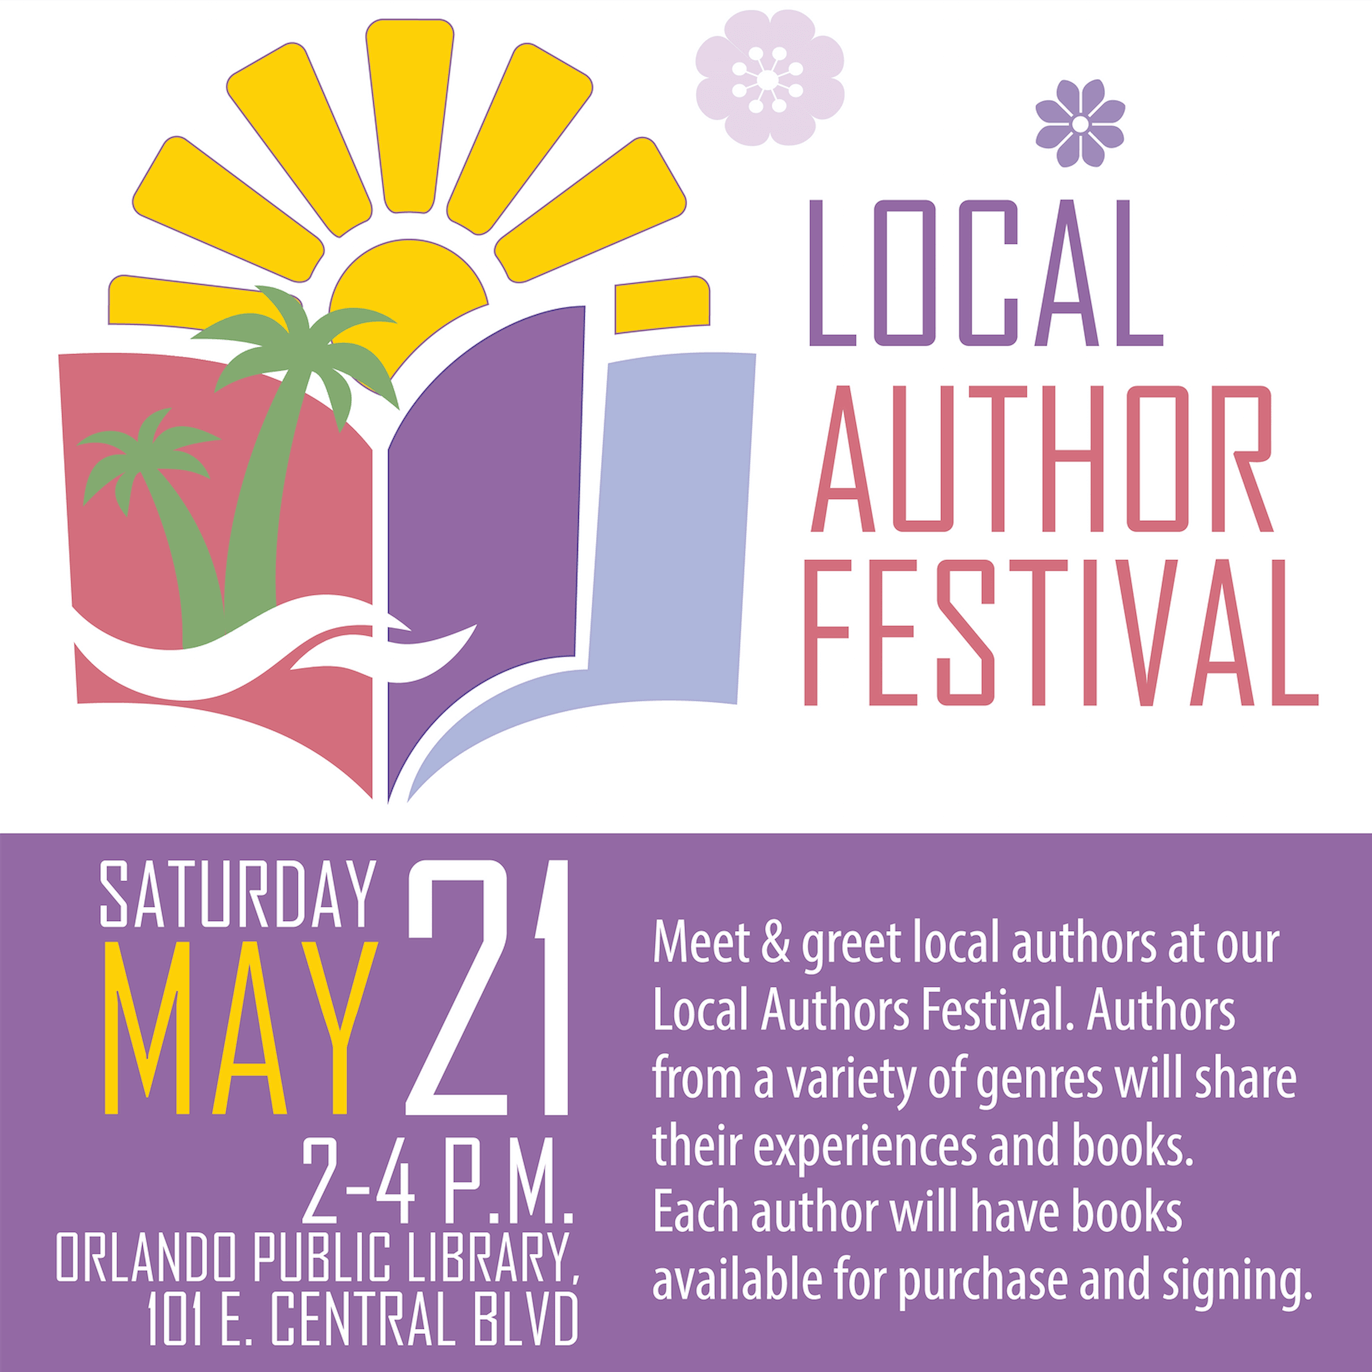 Local Author Festival at Orlando Public Library